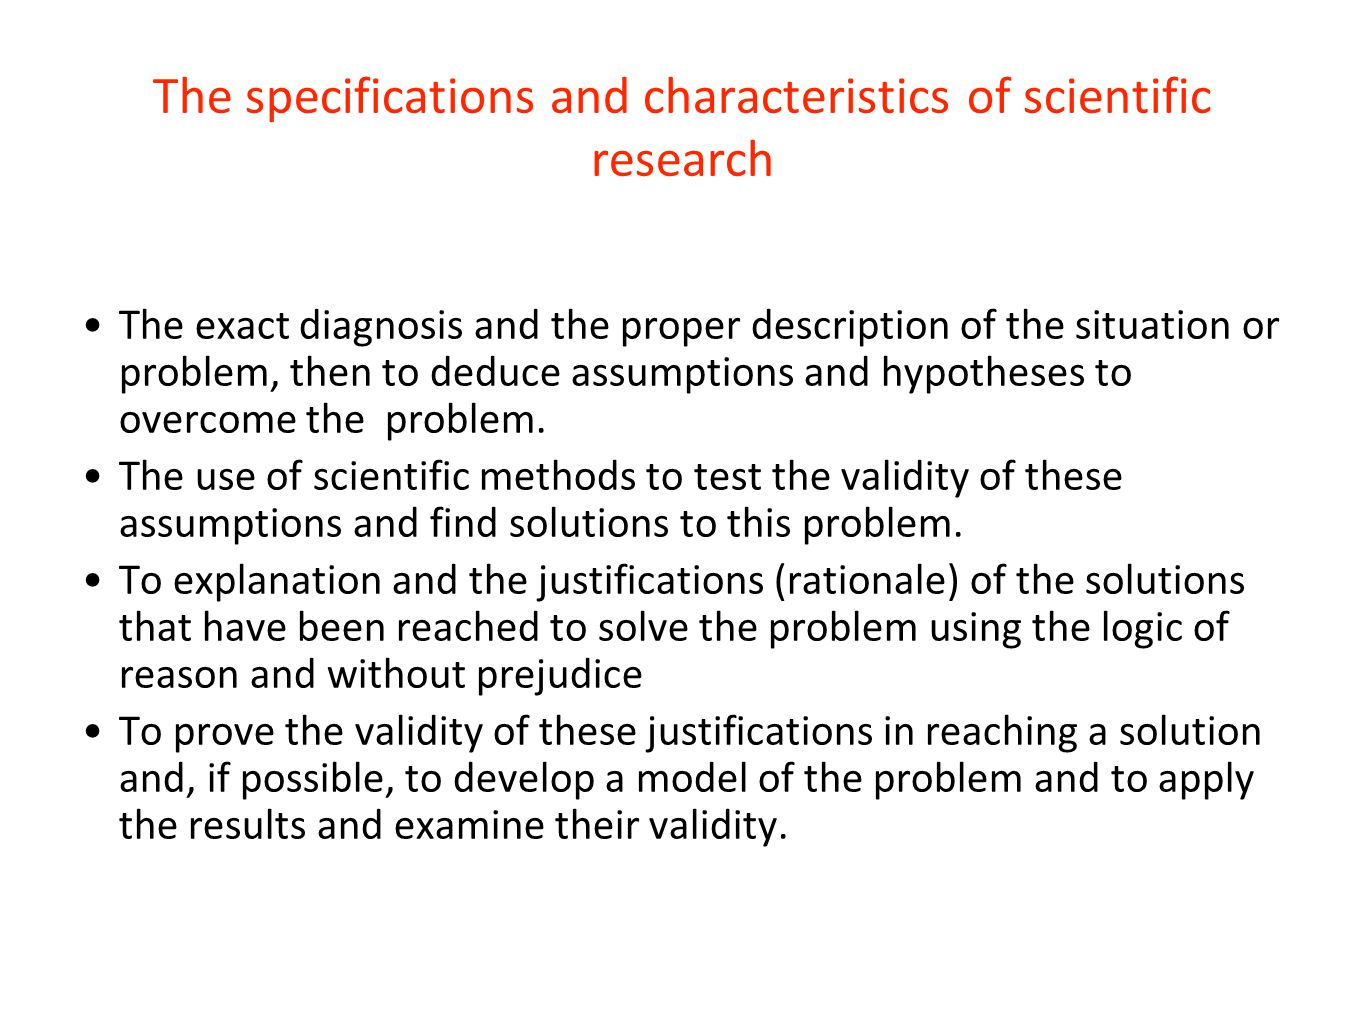 The specifications and characteristics of scientific research